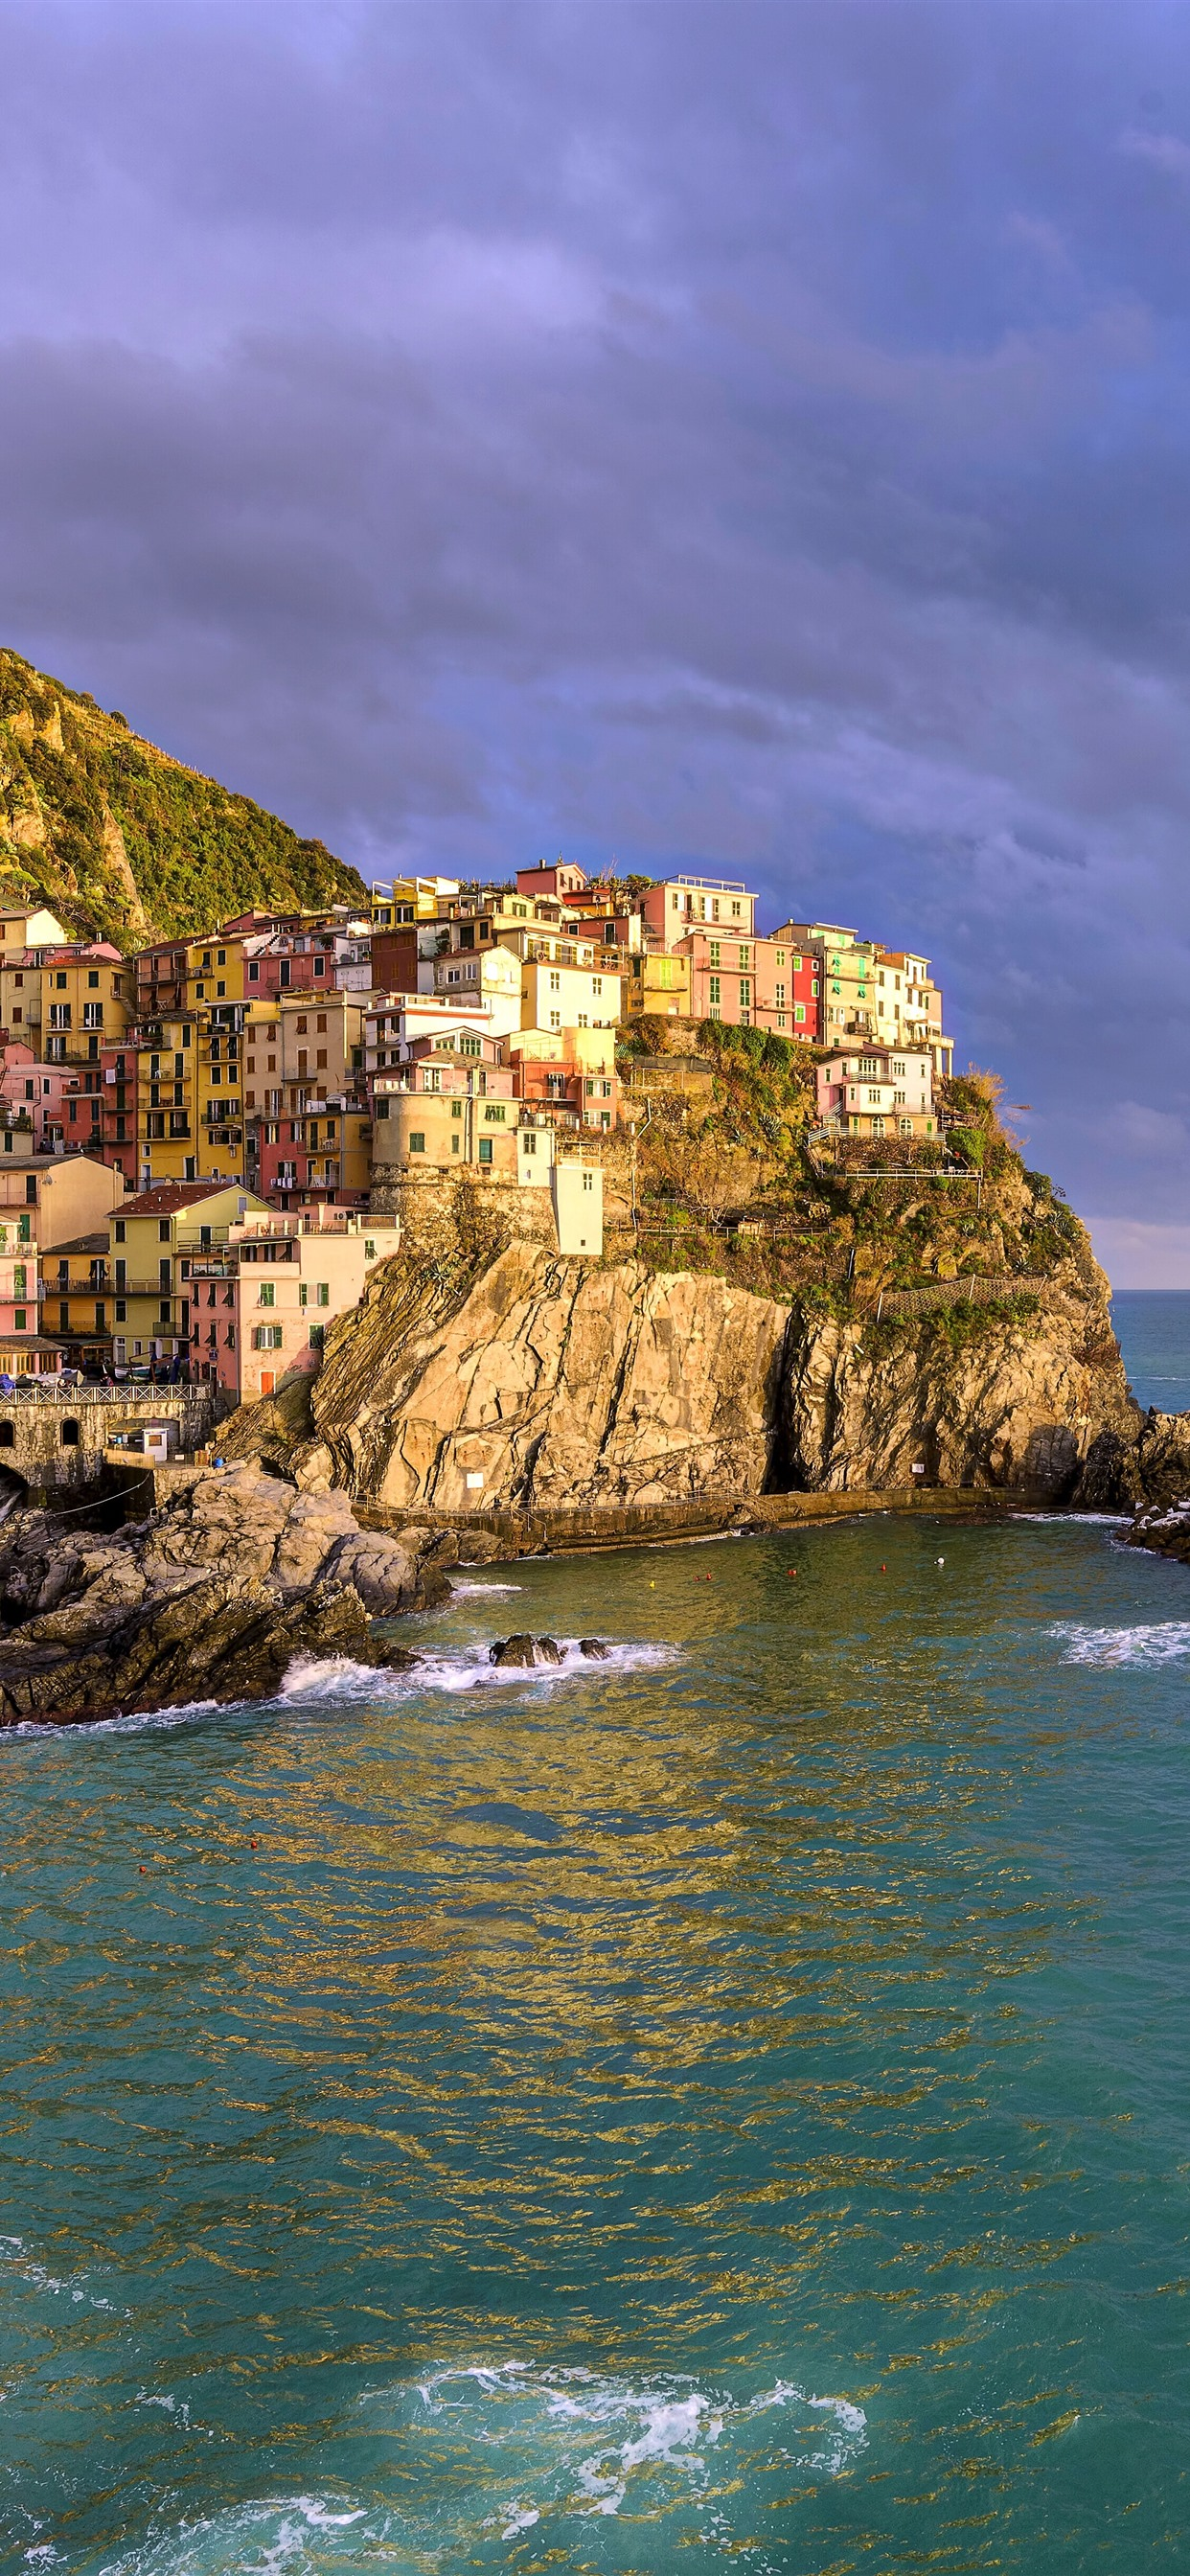 Italy Cinque Terre Ligurian Sea Houses Mountain Clouds